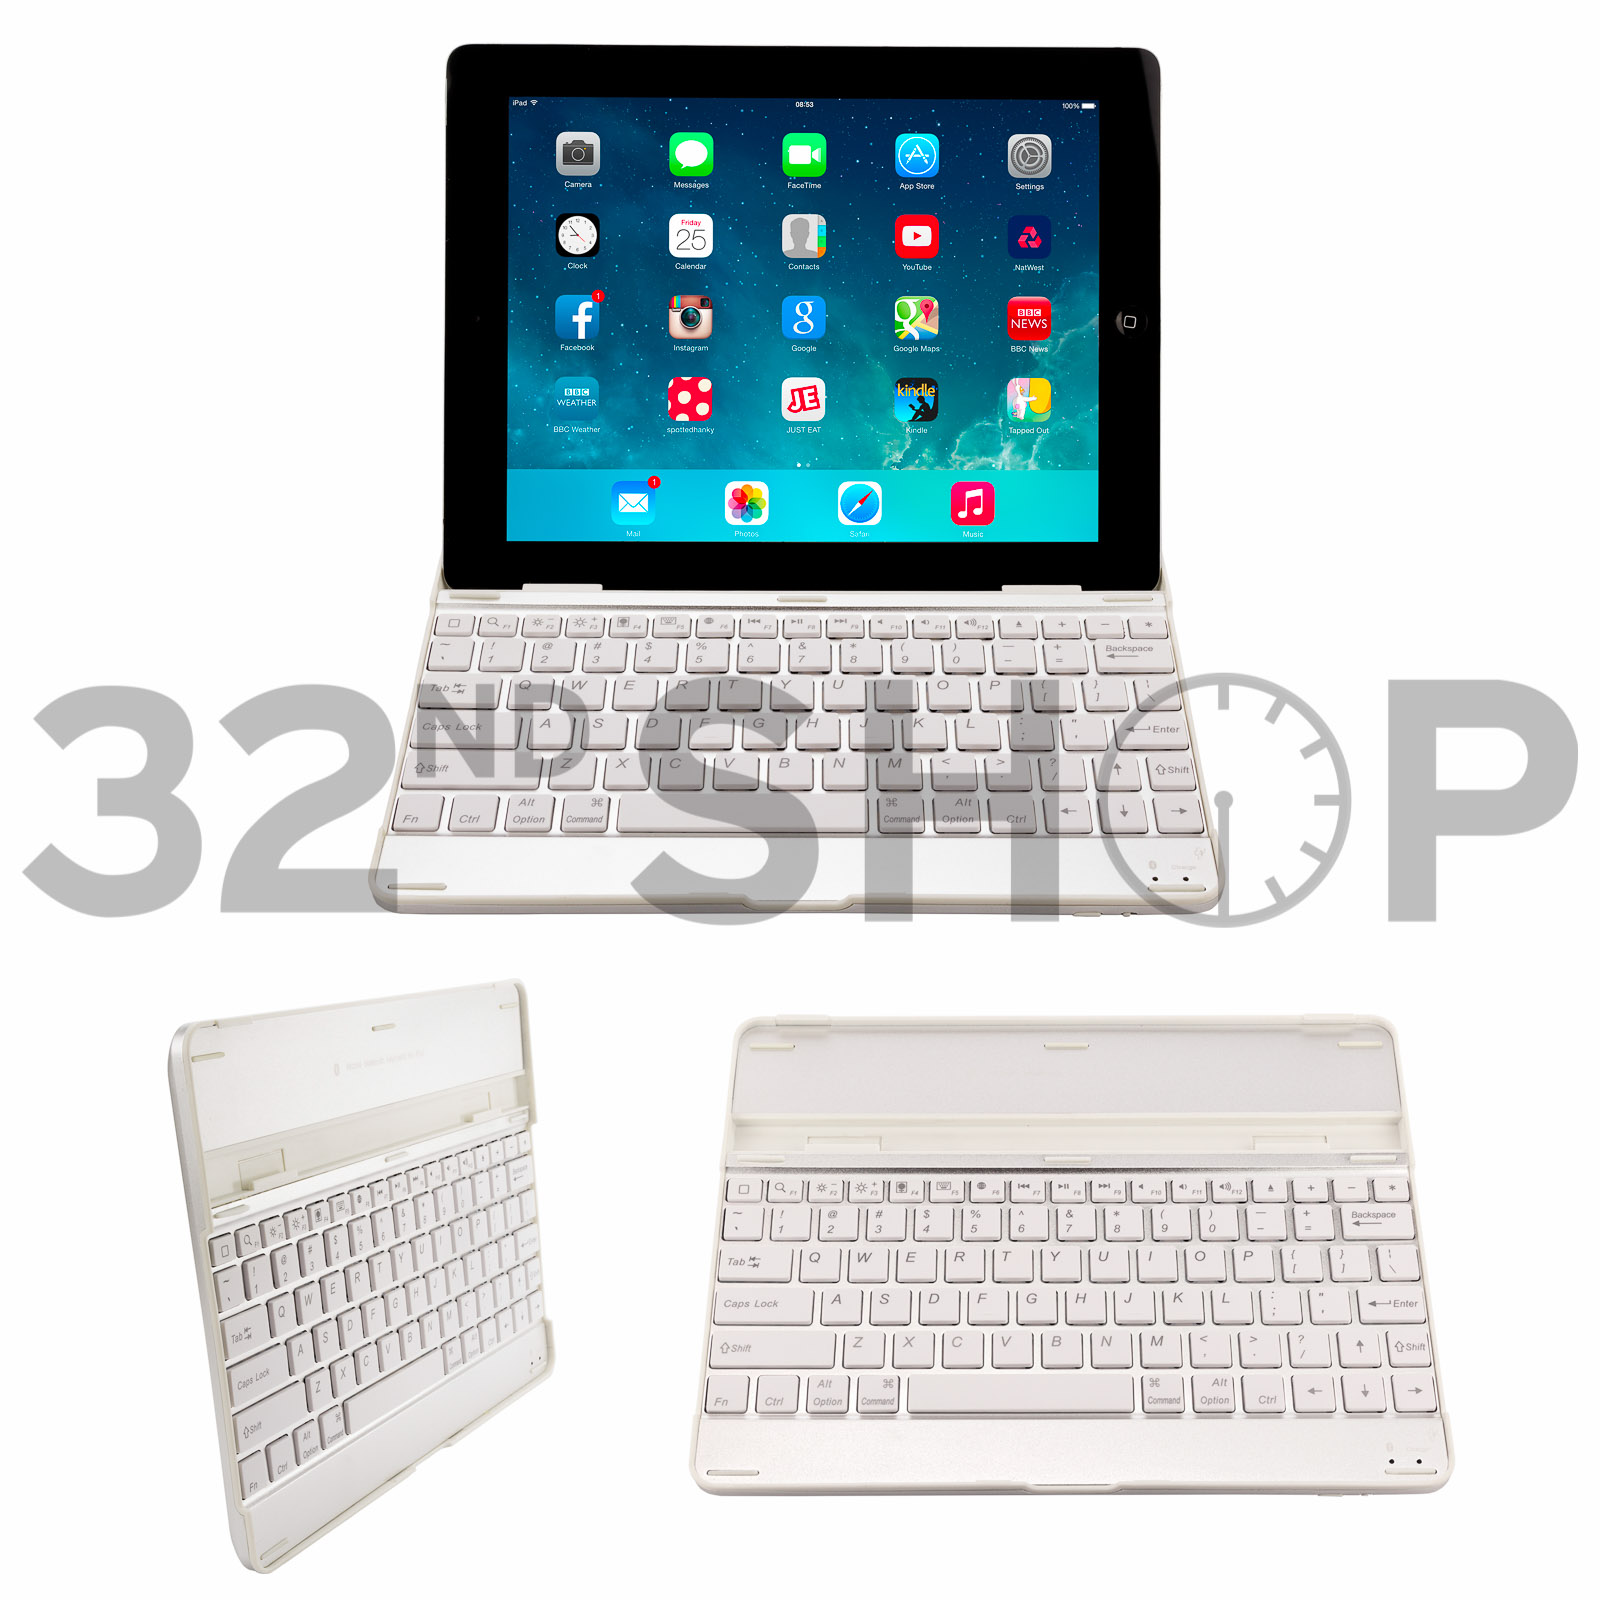 how to connect apple wireless keyboard to ipad air